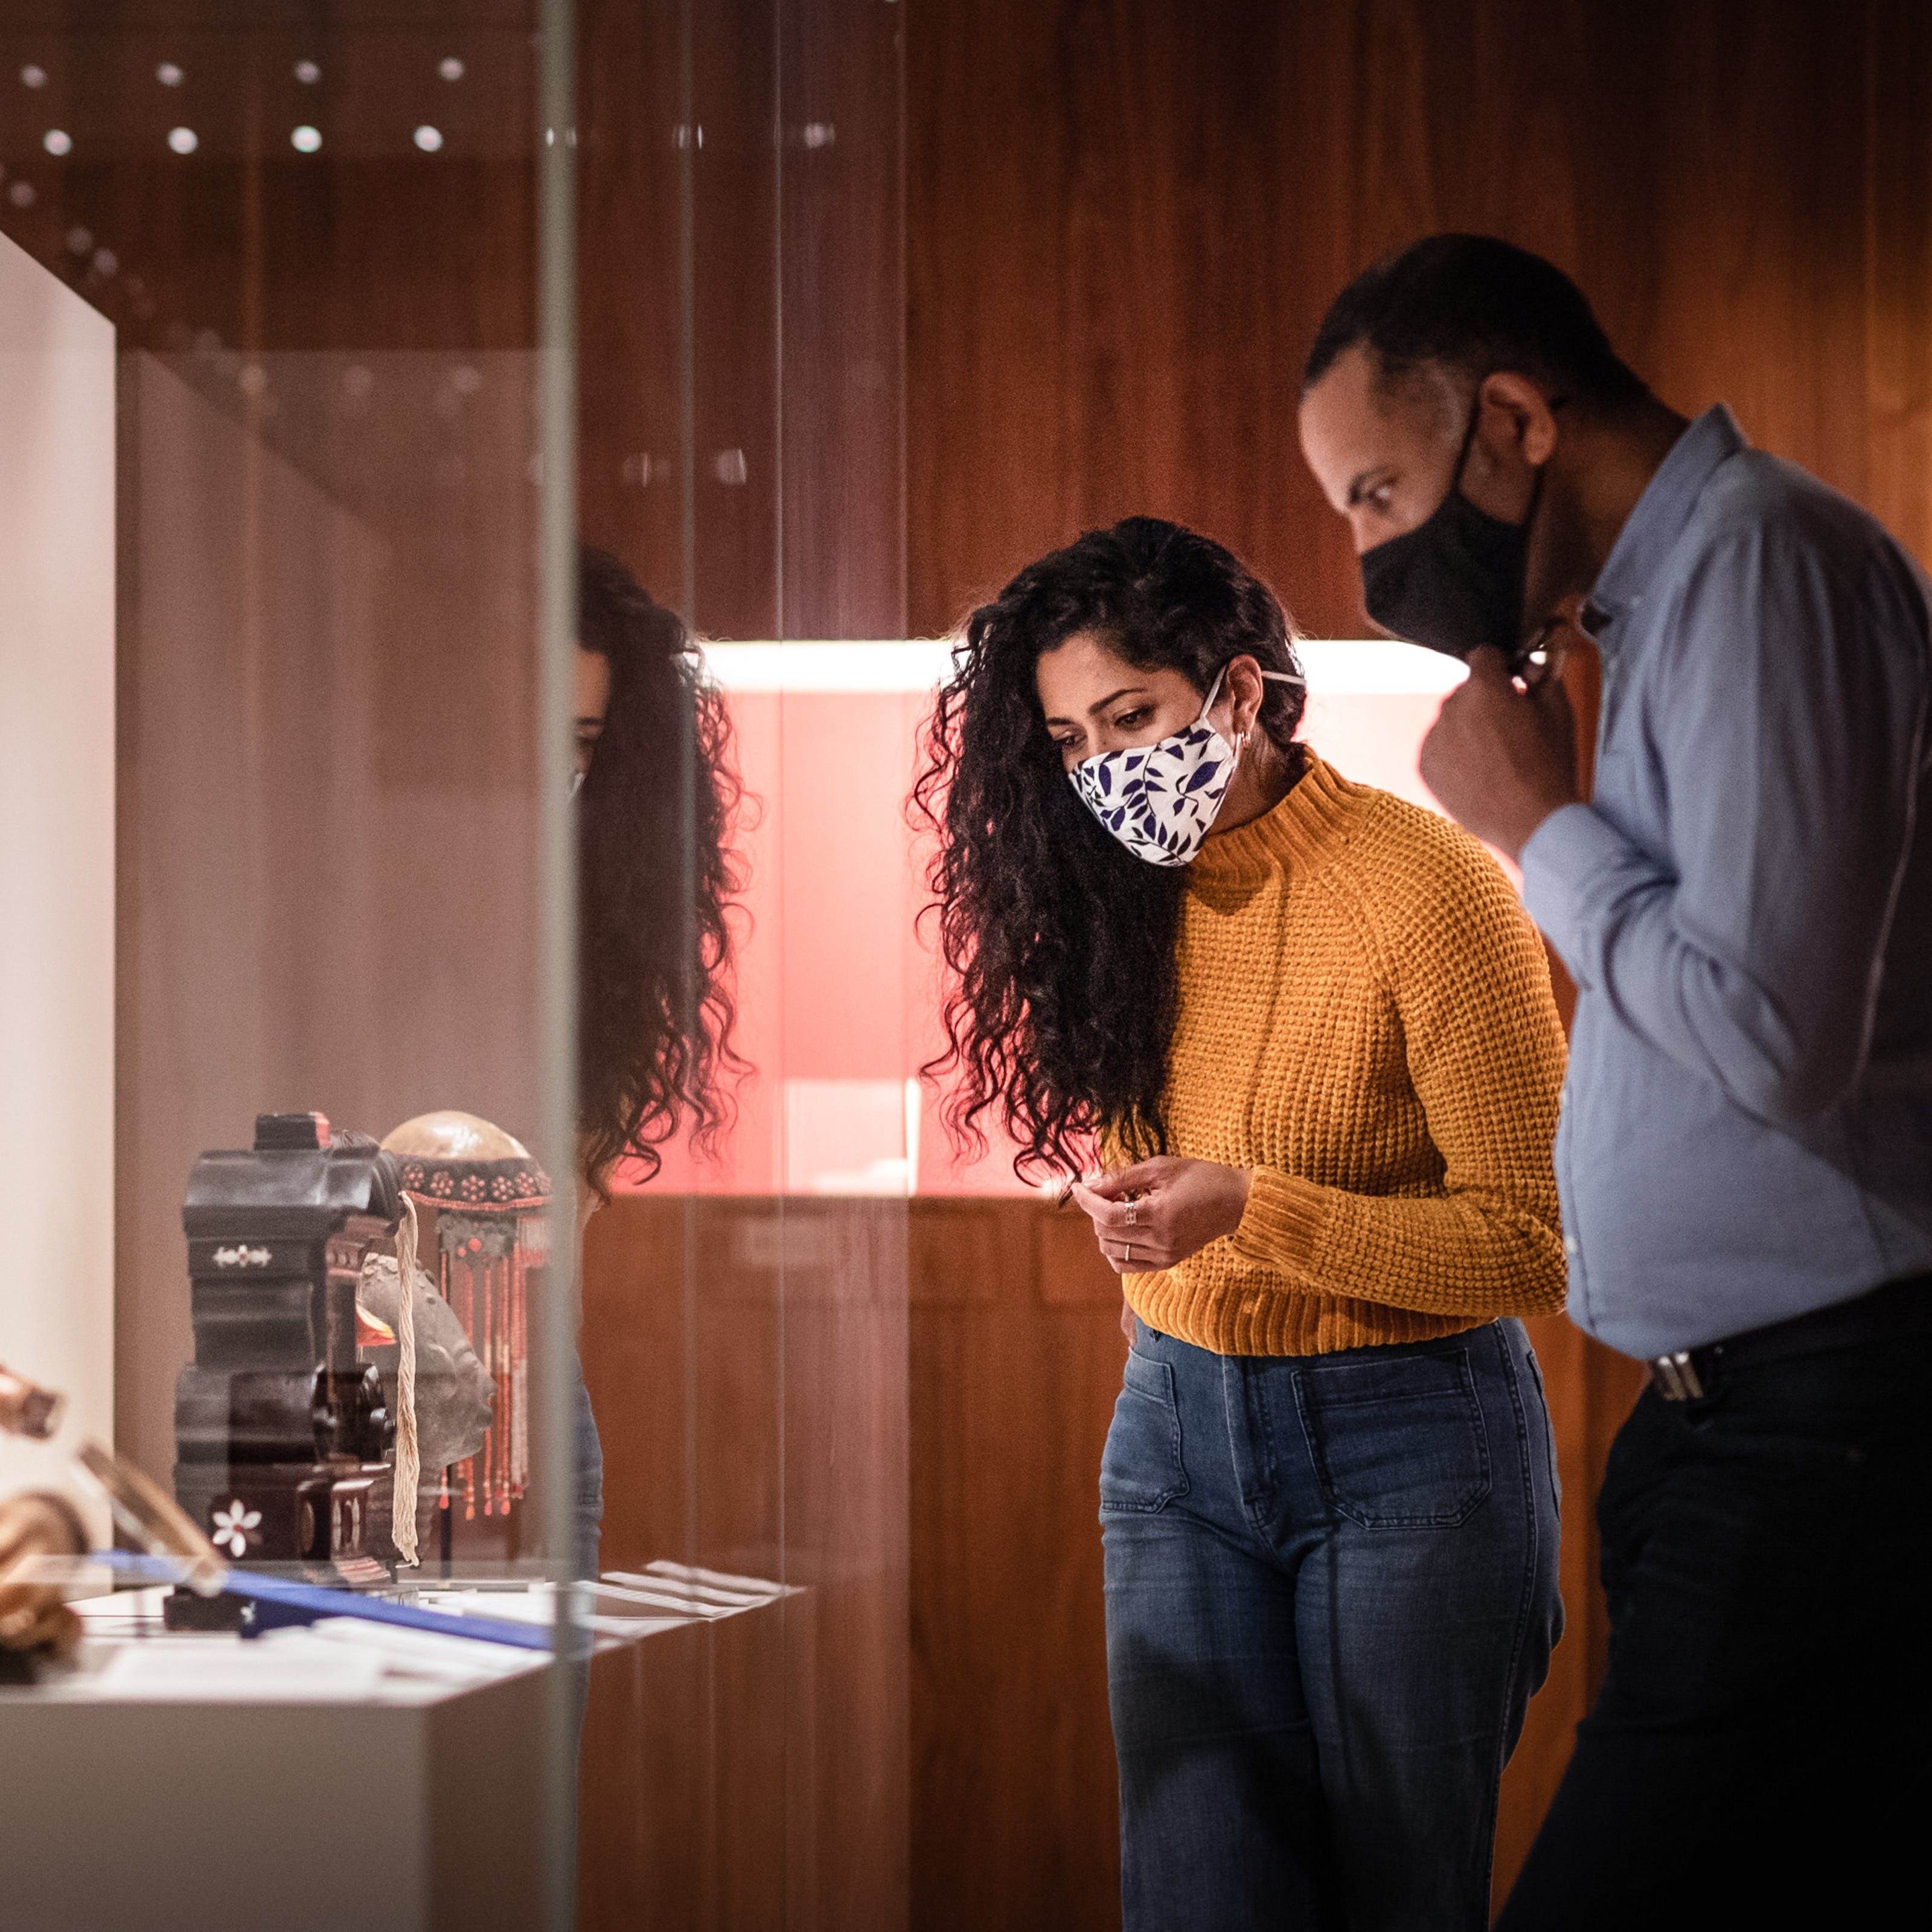 Photograph of a man and a woman wearing face coverings exploring a museum gallery. The woman is wearing a yellow knitted jumper and a pair of blue jeans. The man is wearing a blue shirt and dark trousers. It is a dark gallery with spot lit exhibits and wooden panelled walls. The couple are standing side by side to the right of the frame in mid discussion about objects in a display case. To the left of the frame is the large glass display case they are looking at, containing several objects, from vases to models of the human head to small cabinets.